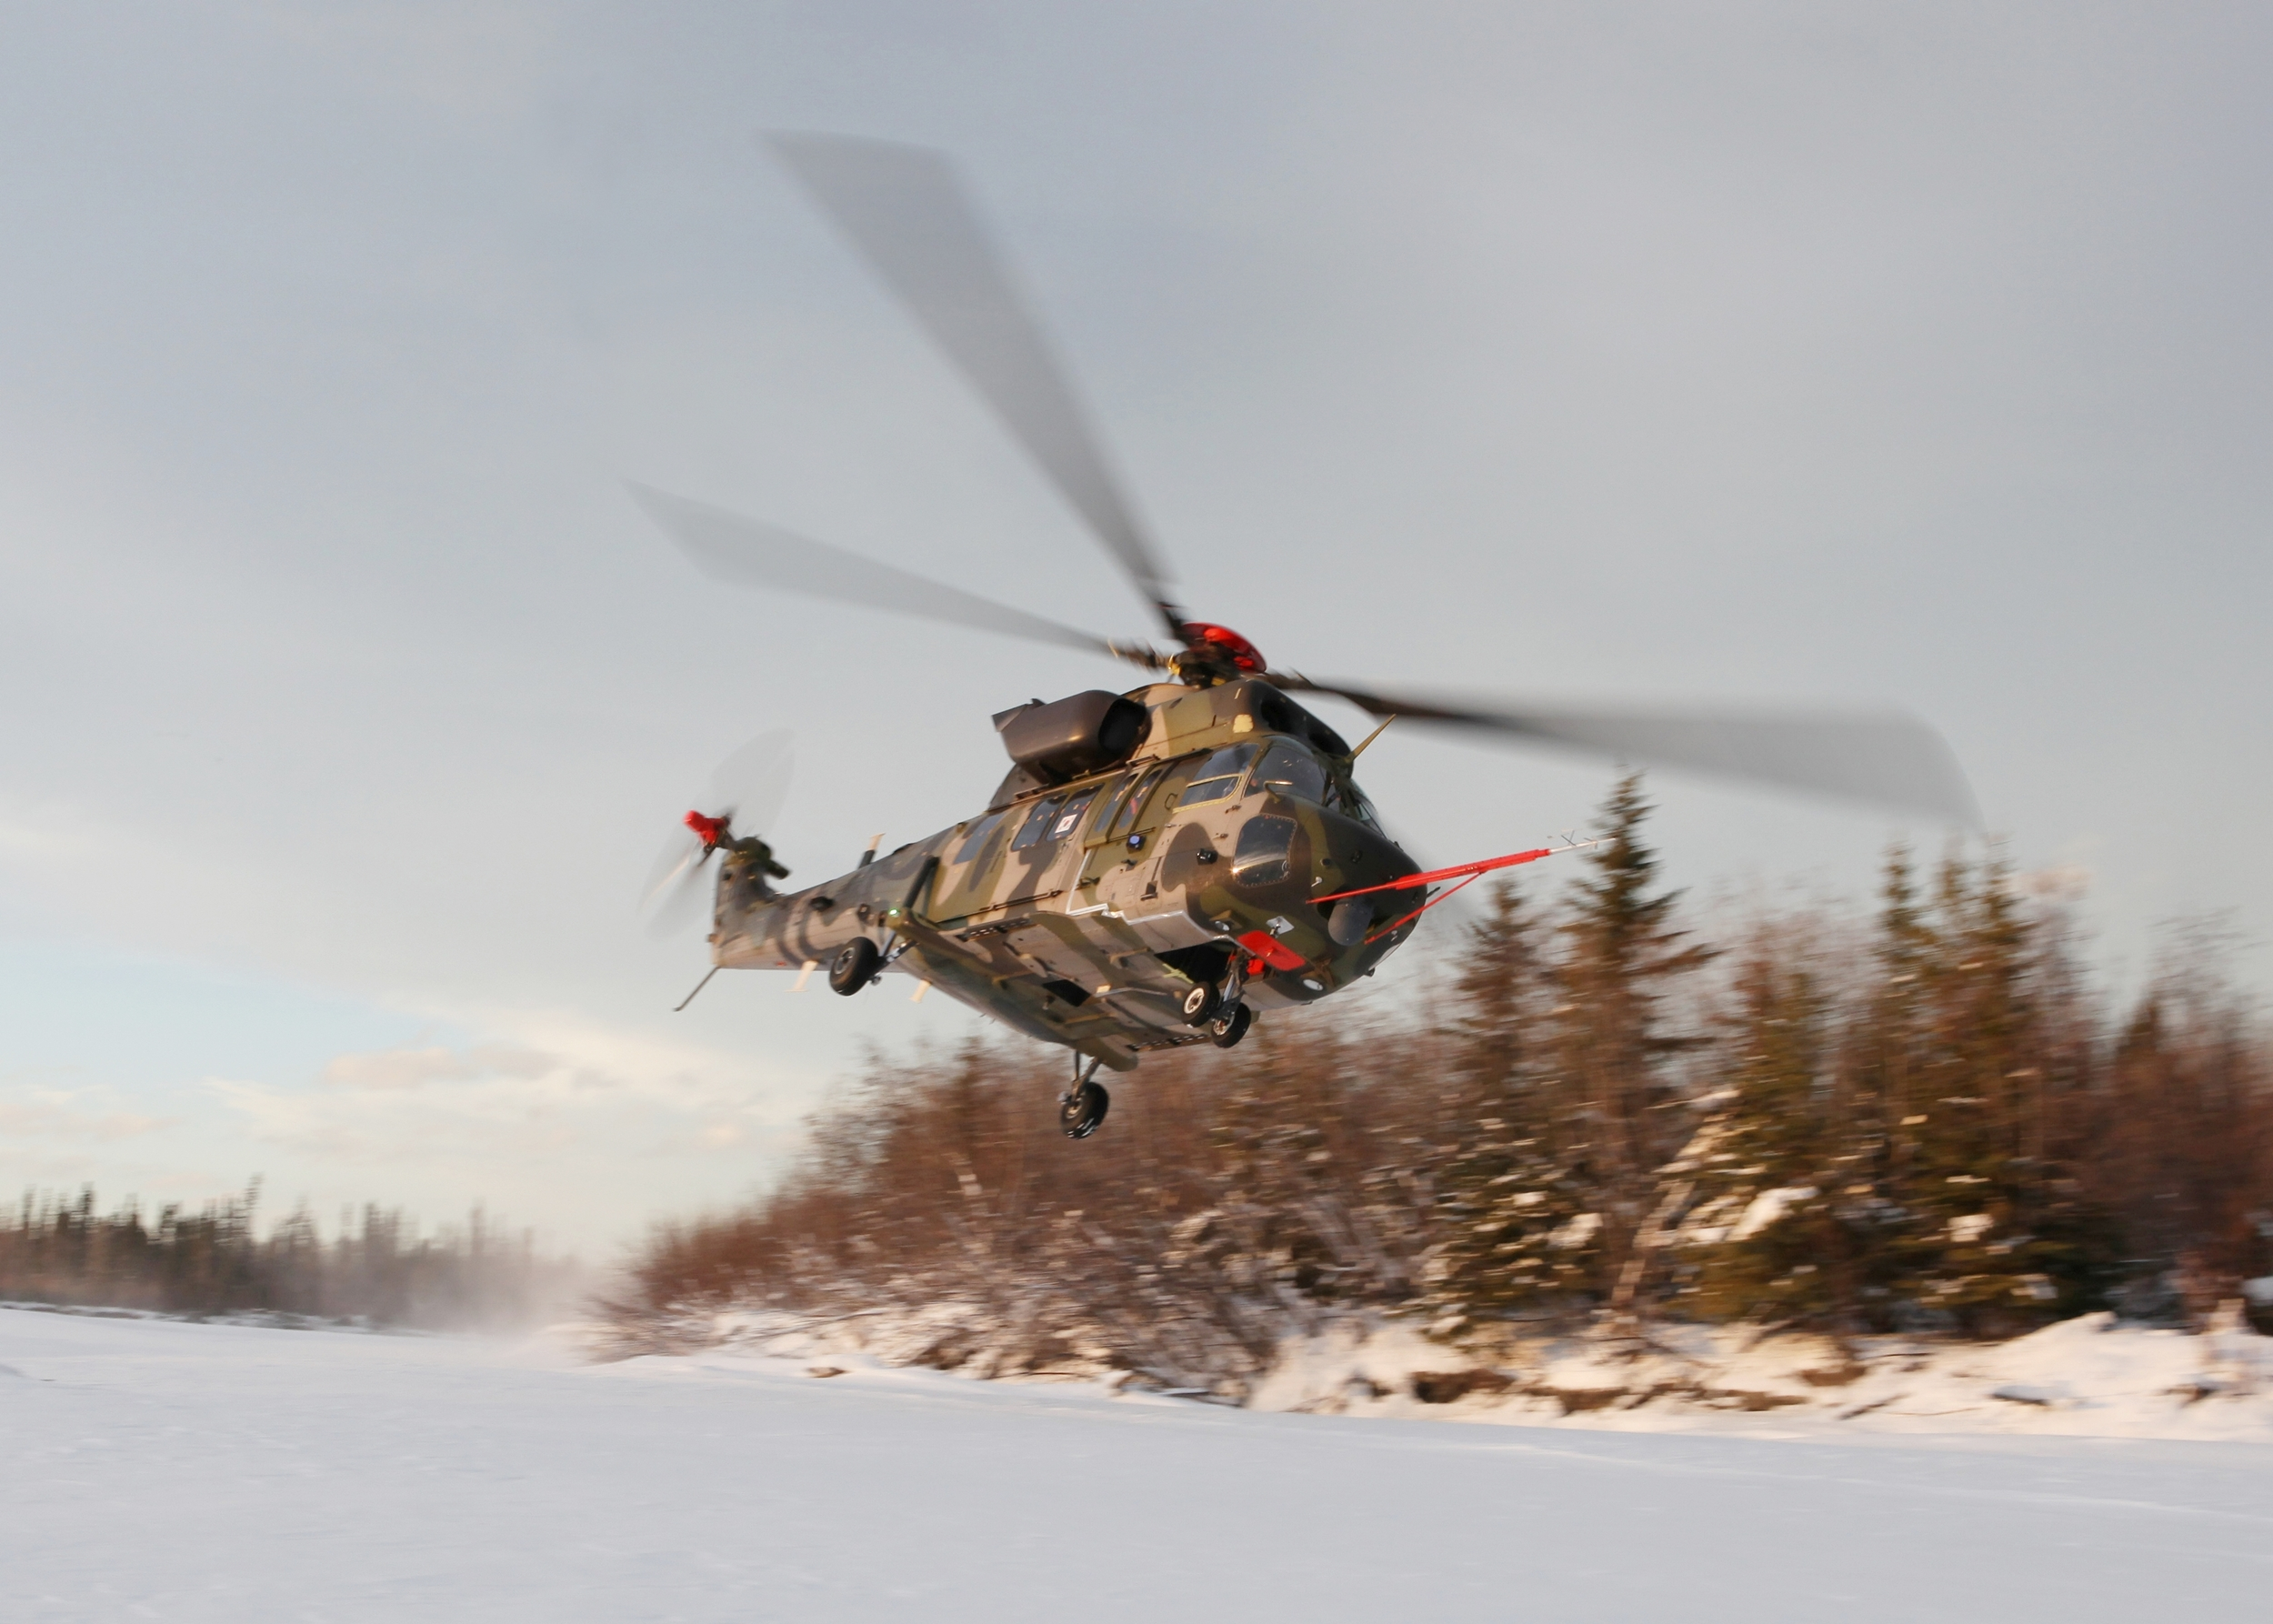 helicopter to work with File Kuh 1 Surion In Alaska  12201684294 on 556194622699909416 in addition File SH 3H from HS 4 drops Mk 46 torpedo 1987 additionally 5986588738 furthermore Ch54 002 also File Mi 17 12551 2 V i PVO VS april 7 2012.